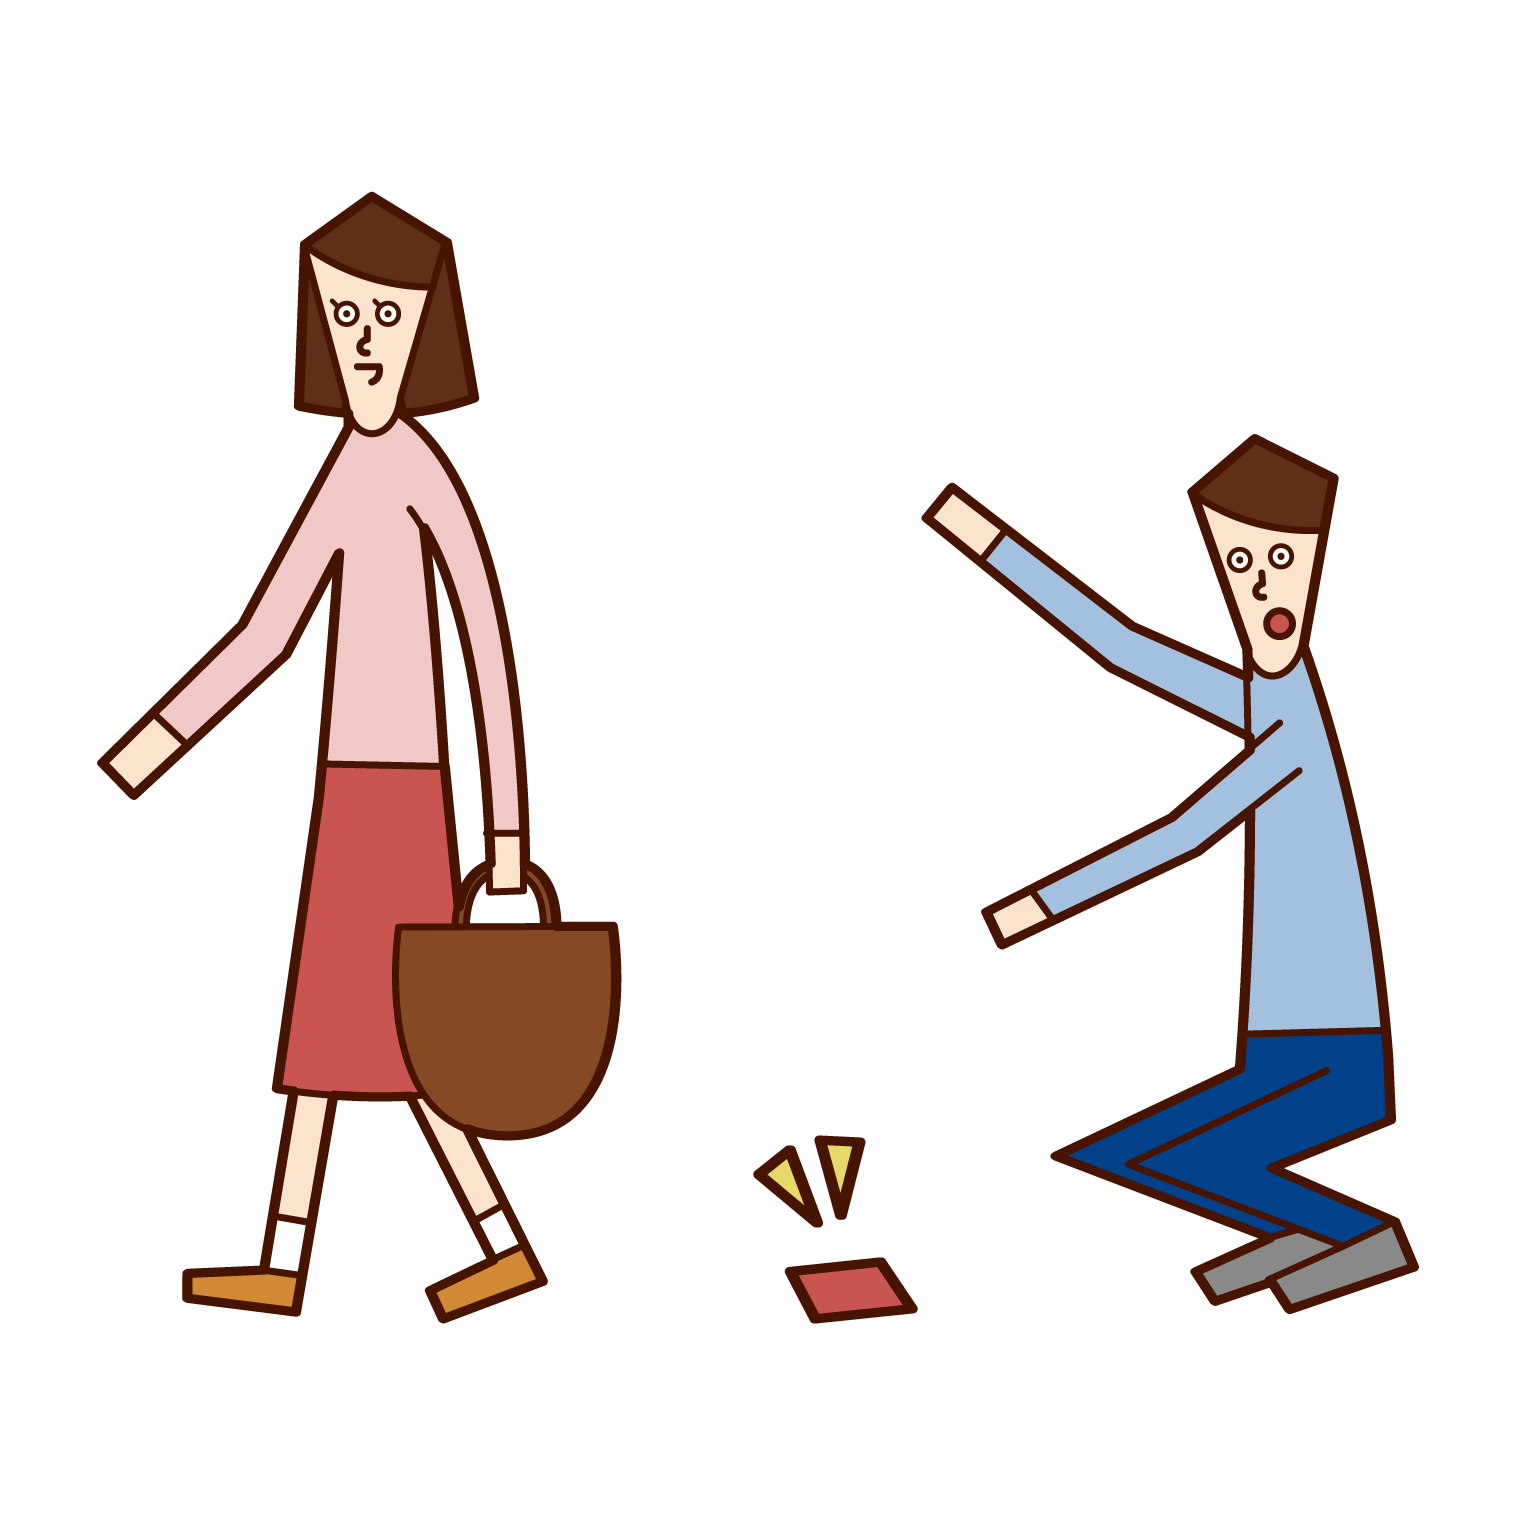 Illustration of a man picking up a lost object